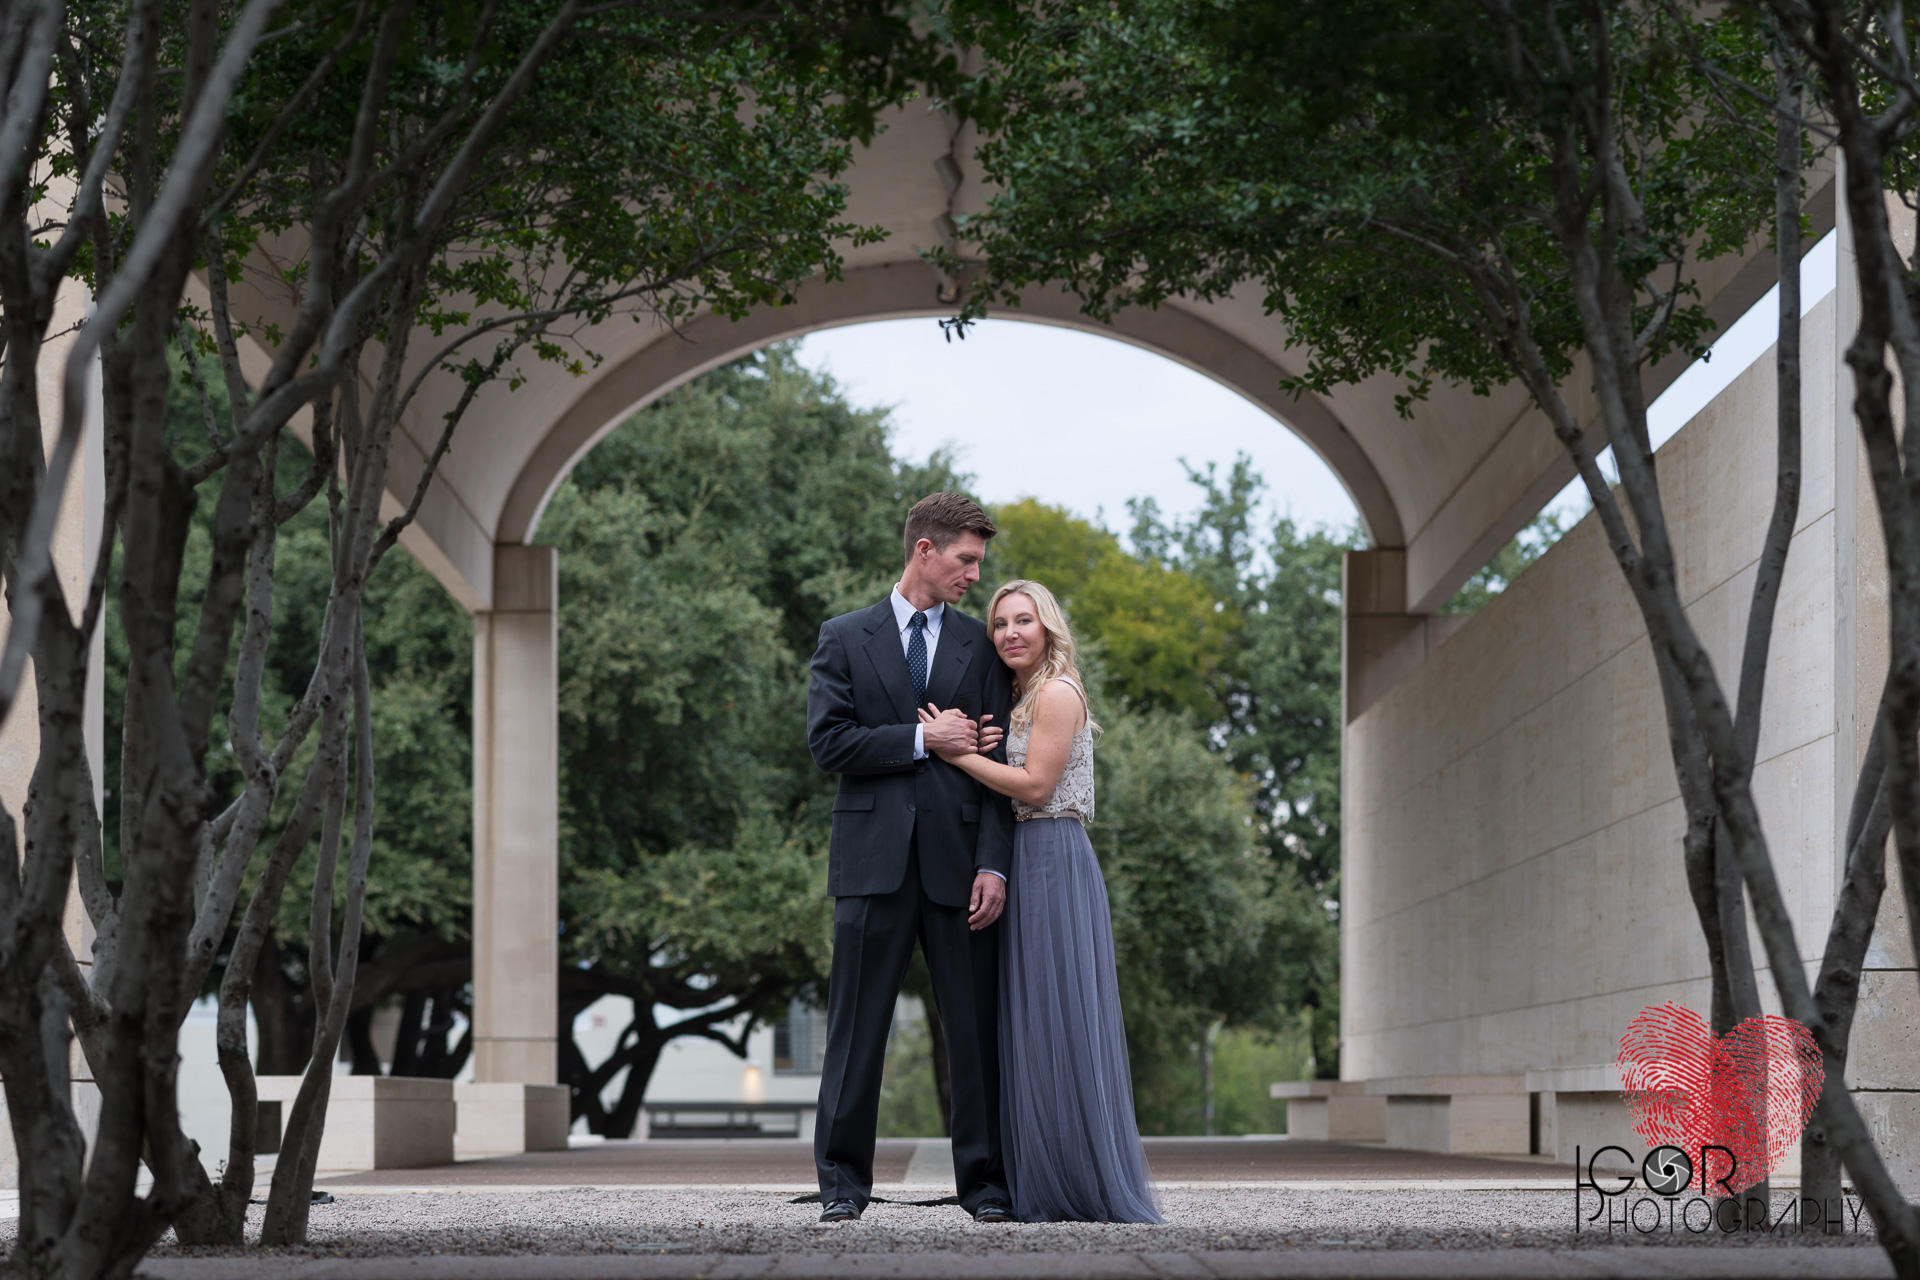 Ft Worth engaged couple